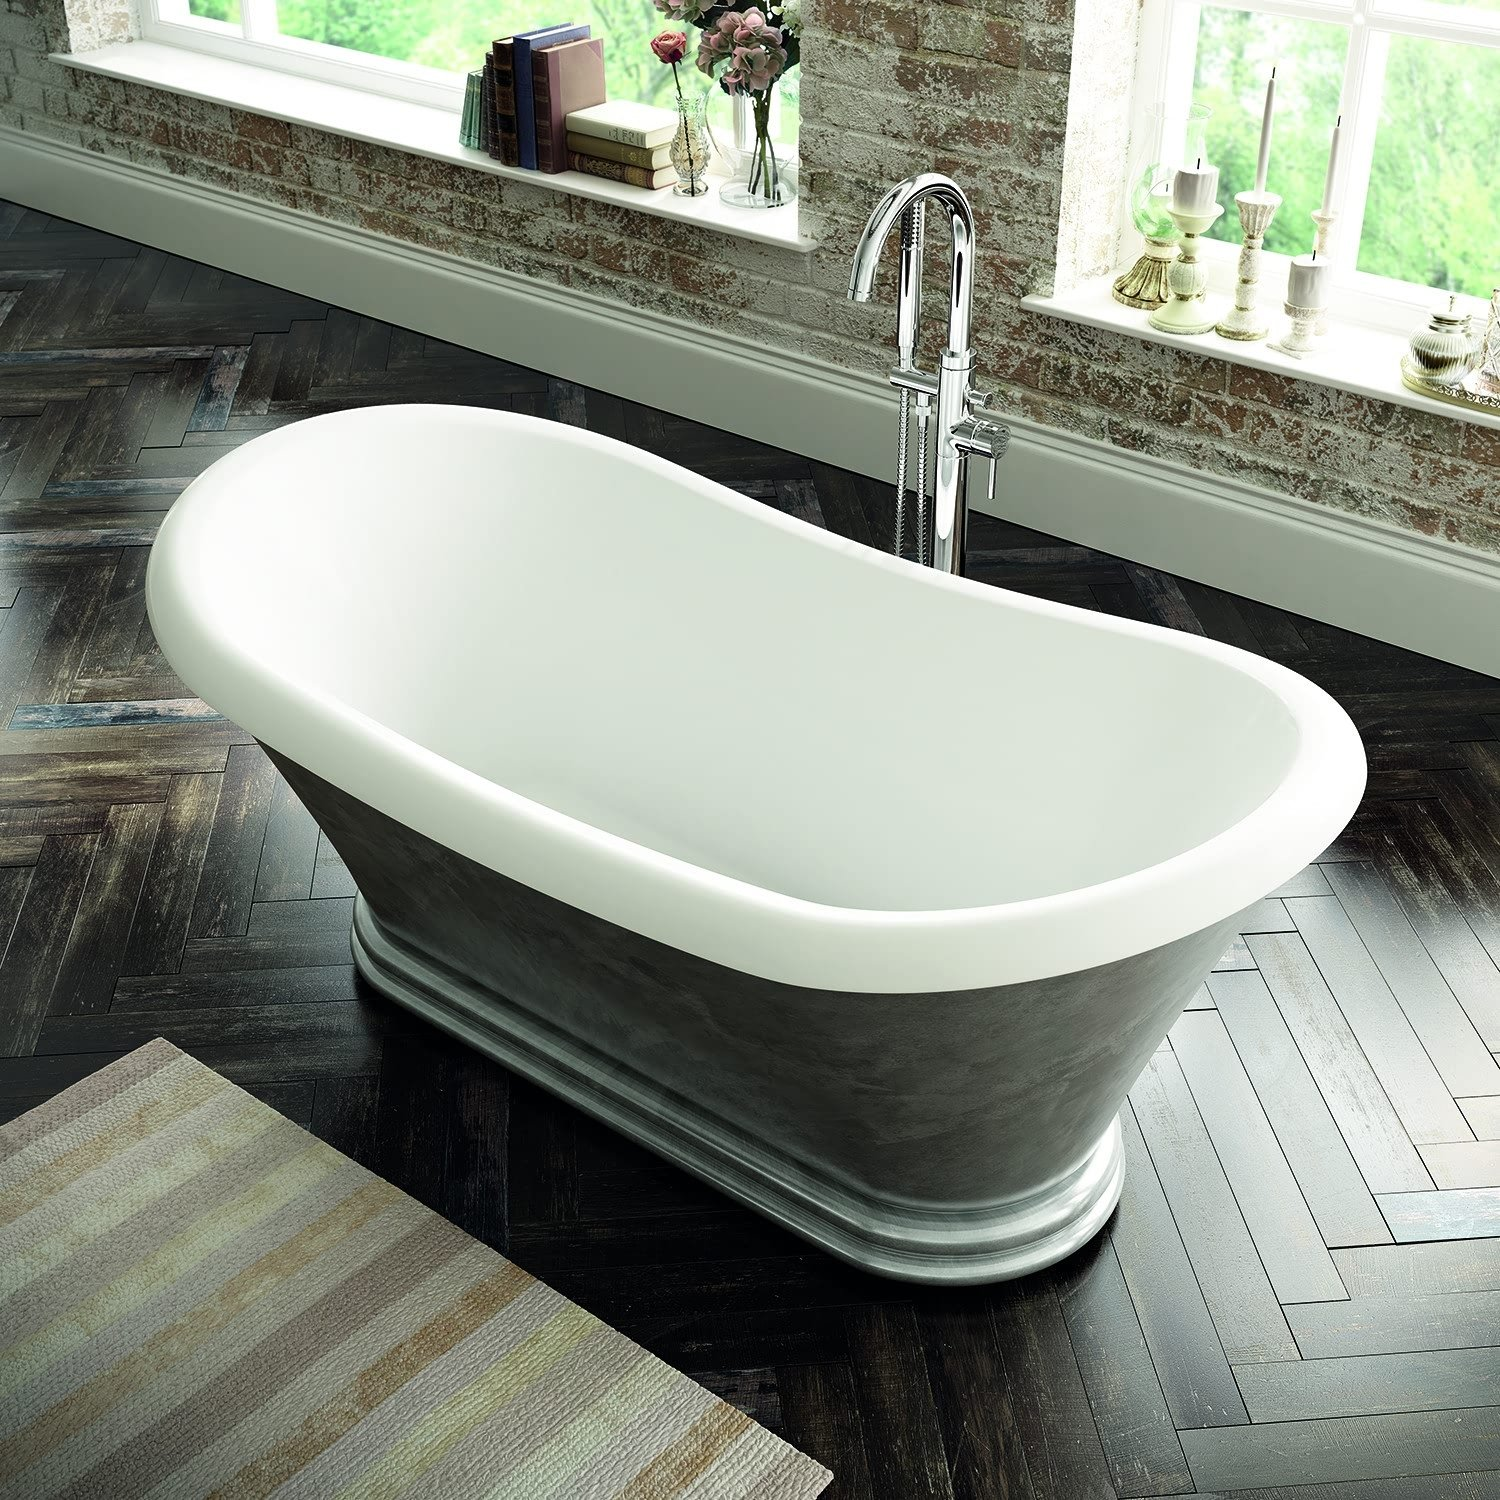 Verona Knightsbridge Freestanding Double Ended Bath 1700mm x 740mm - Scratched Aluminium Finish